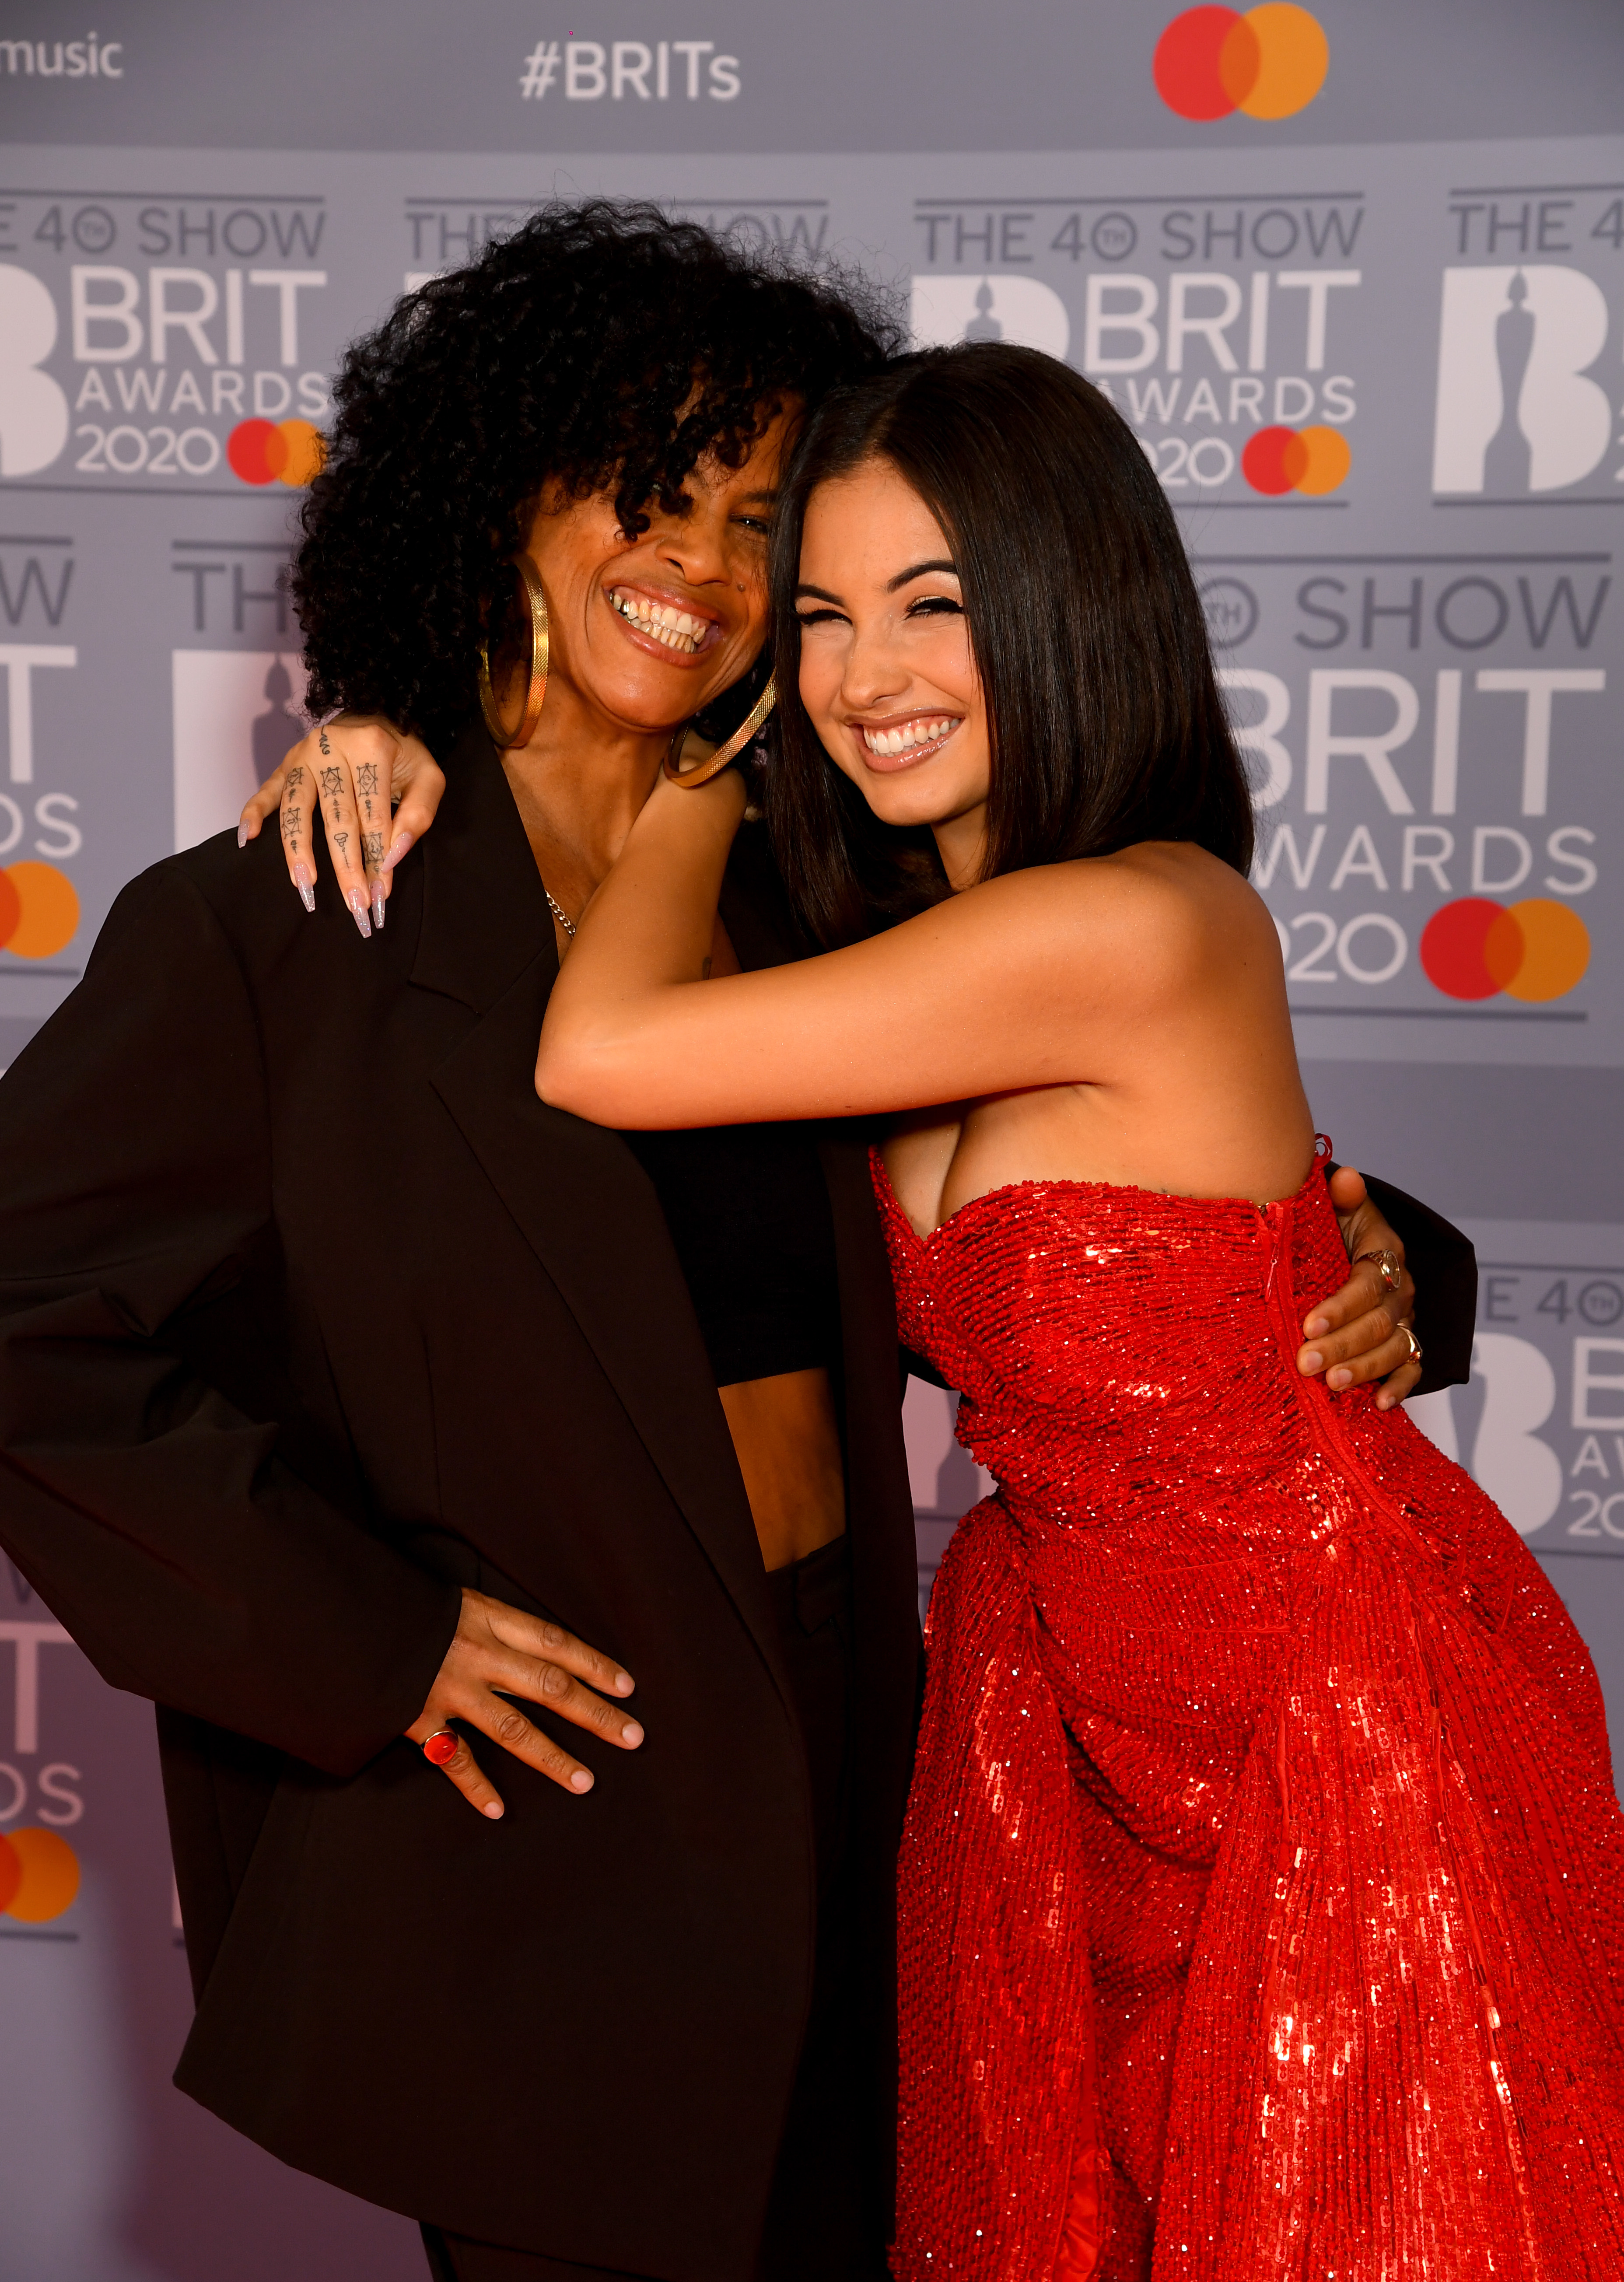 Neneh Cherry and Mabel attend The BRIT Awards 2020 at The O2 Arena on February 18, 2020 in London, England. (Photo by Dave J Hogan/Getty Images)